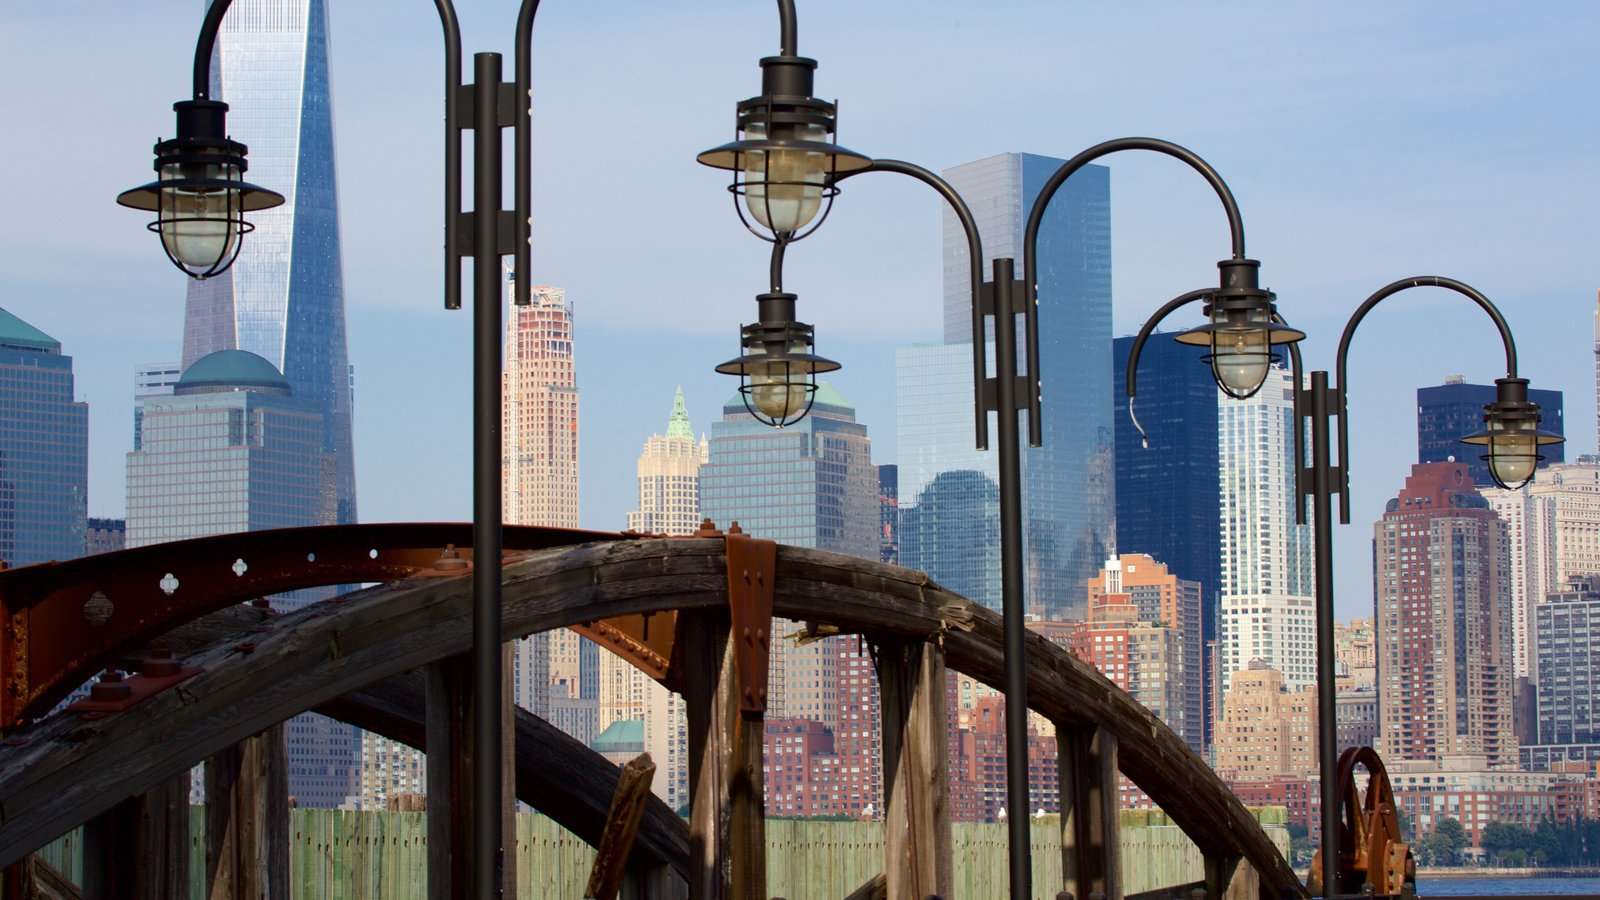 downtown pictures: view images of new jersey